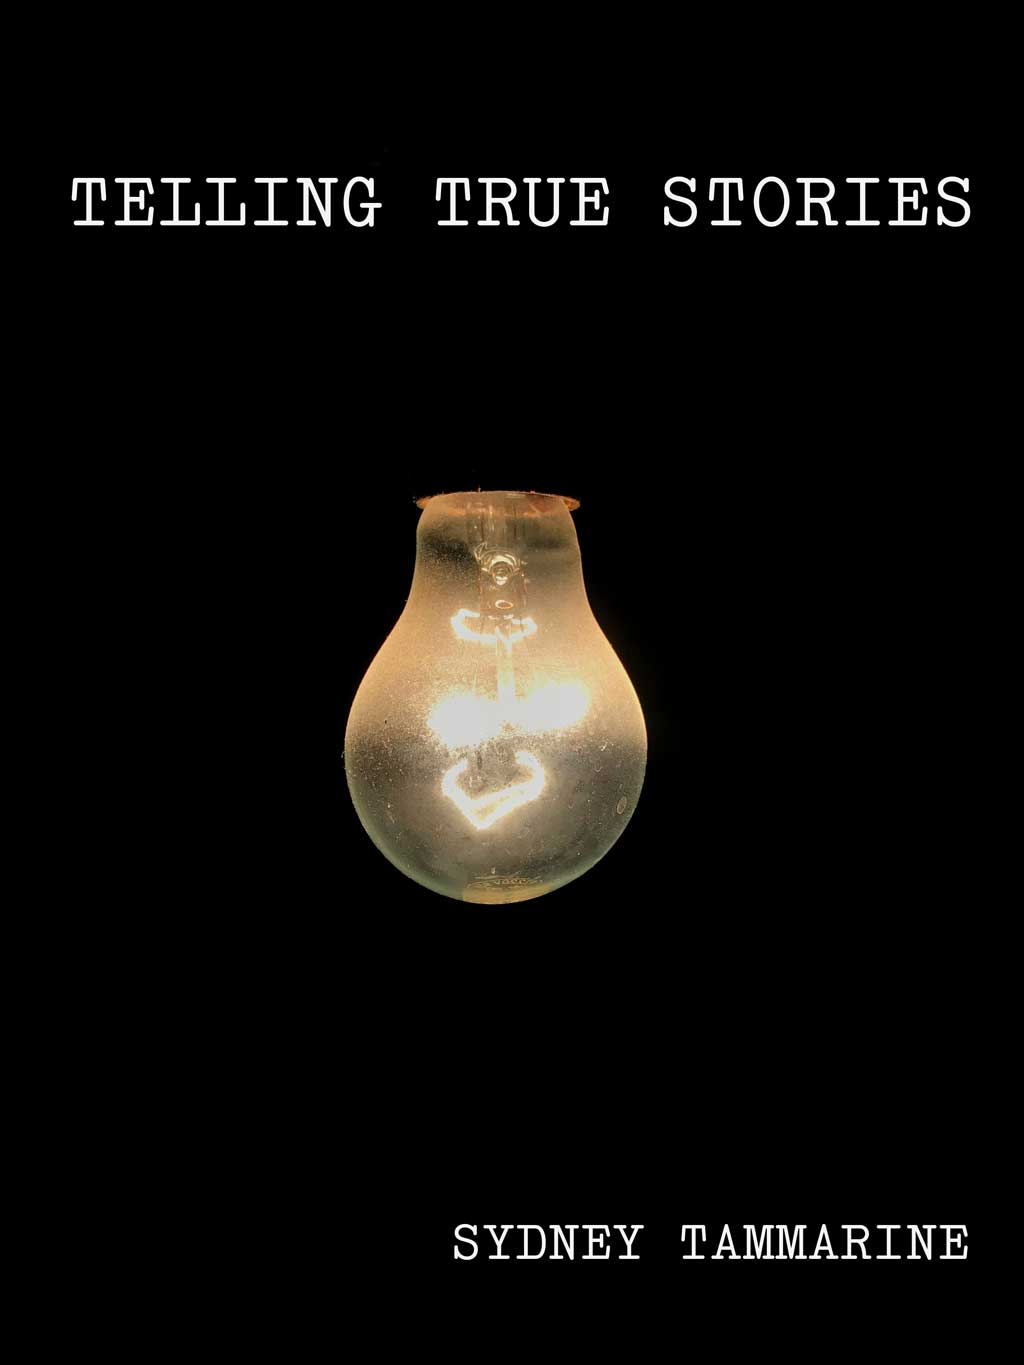 cover image telling true stories a lightbulb on a dark background